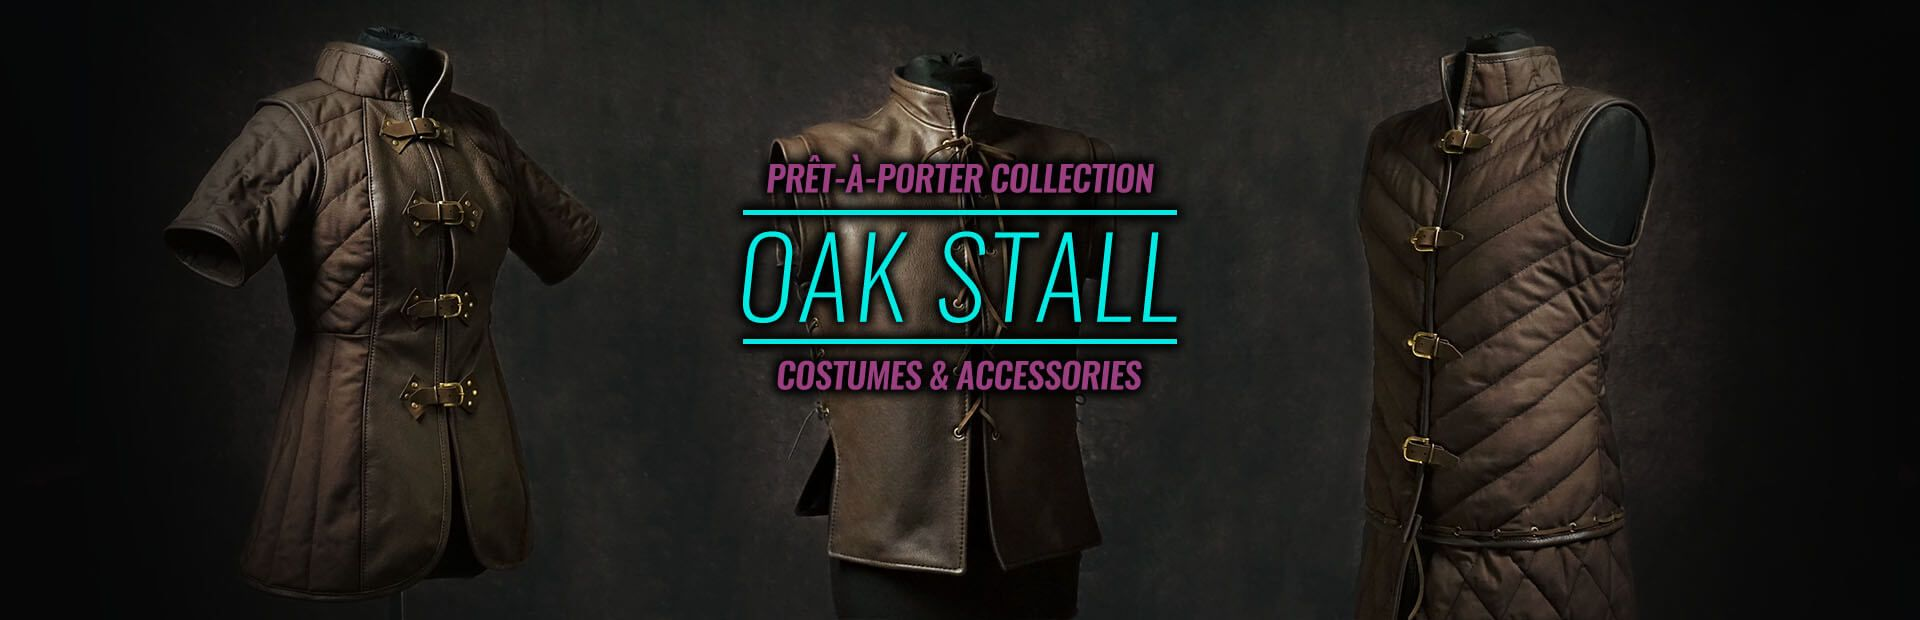 Oak Stall collection